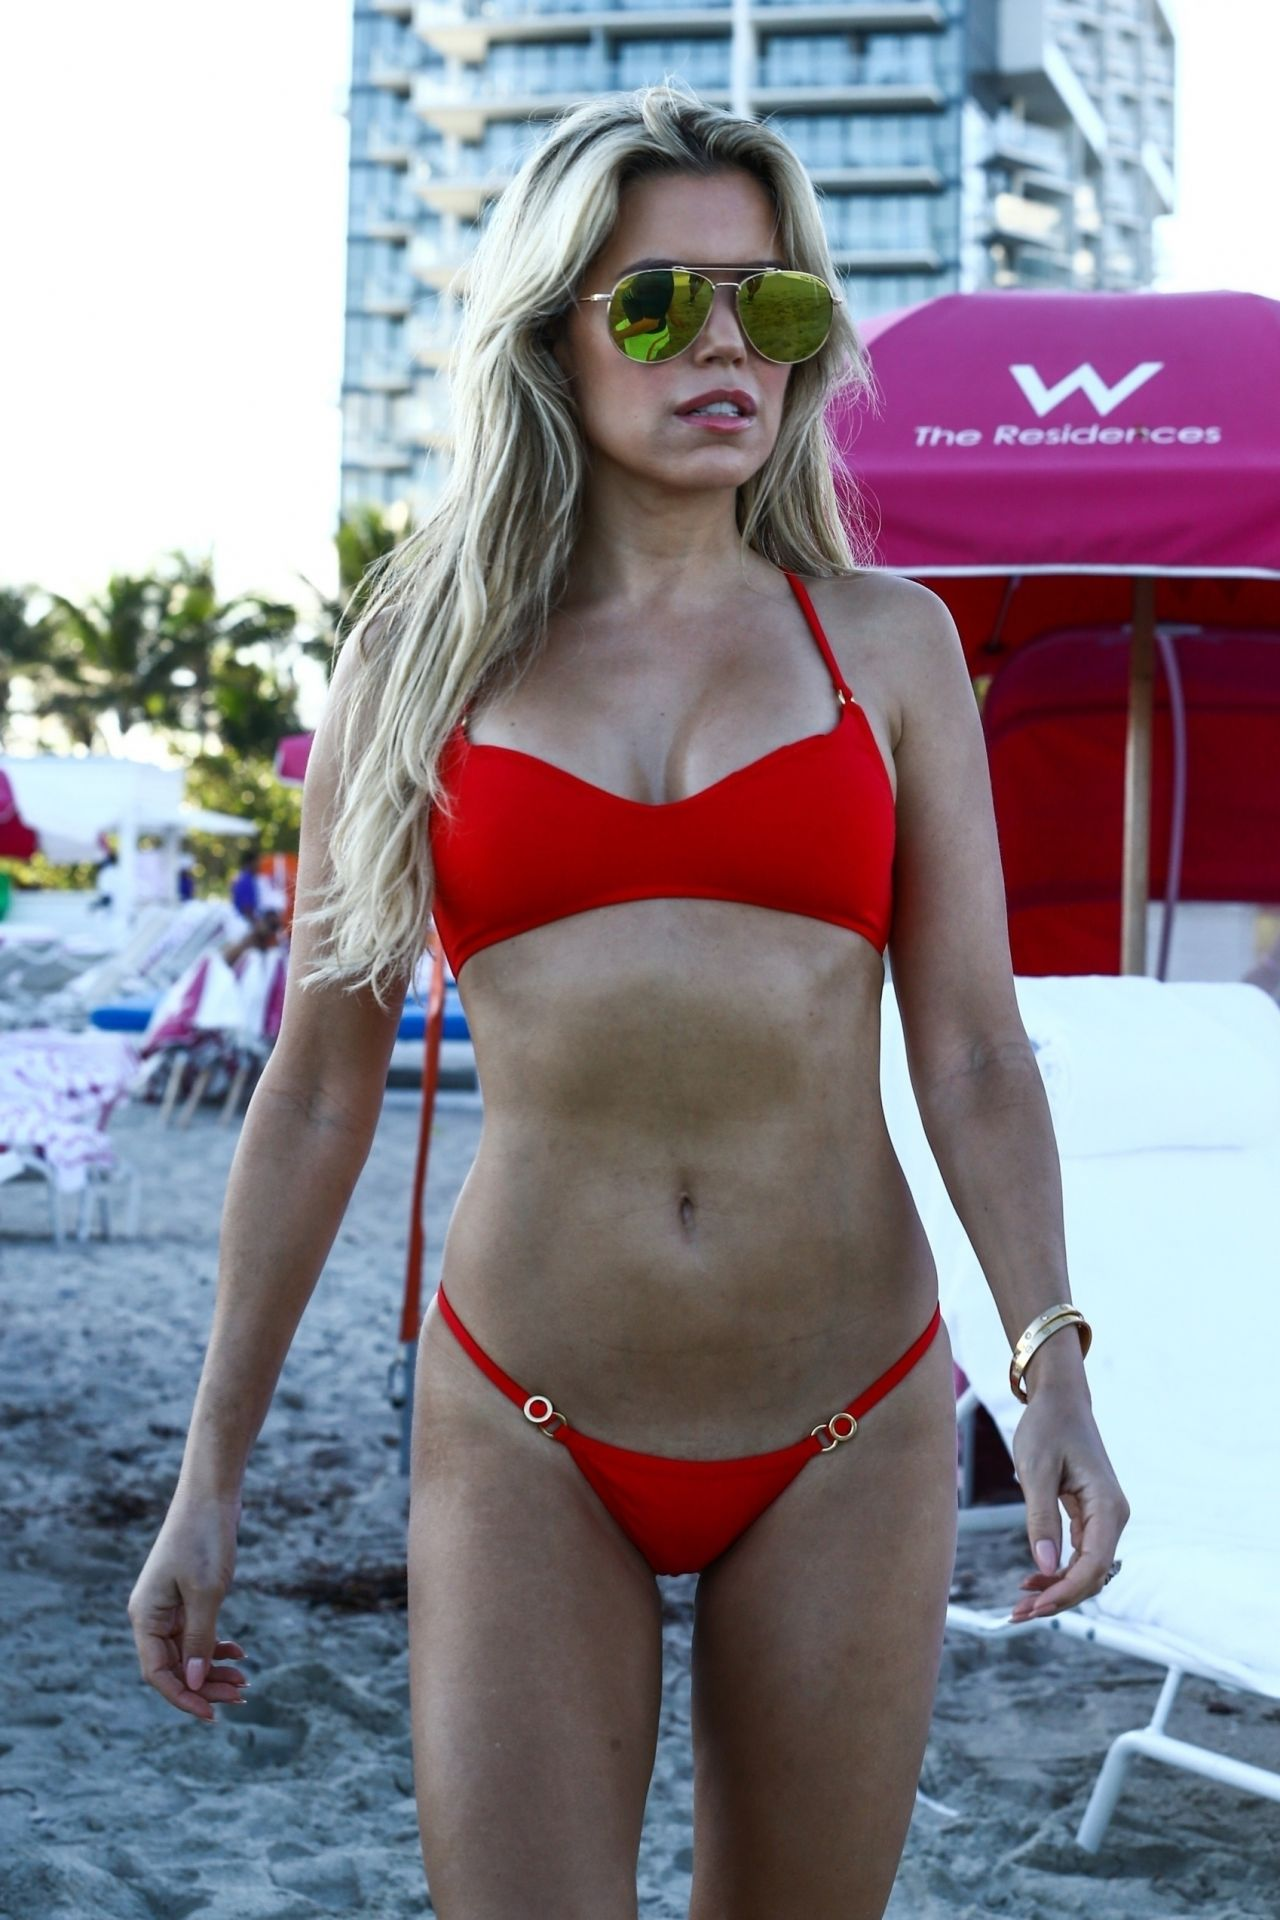 Sylvie Meis in Red Bikini on the beach in Miami Pic 10 of 35